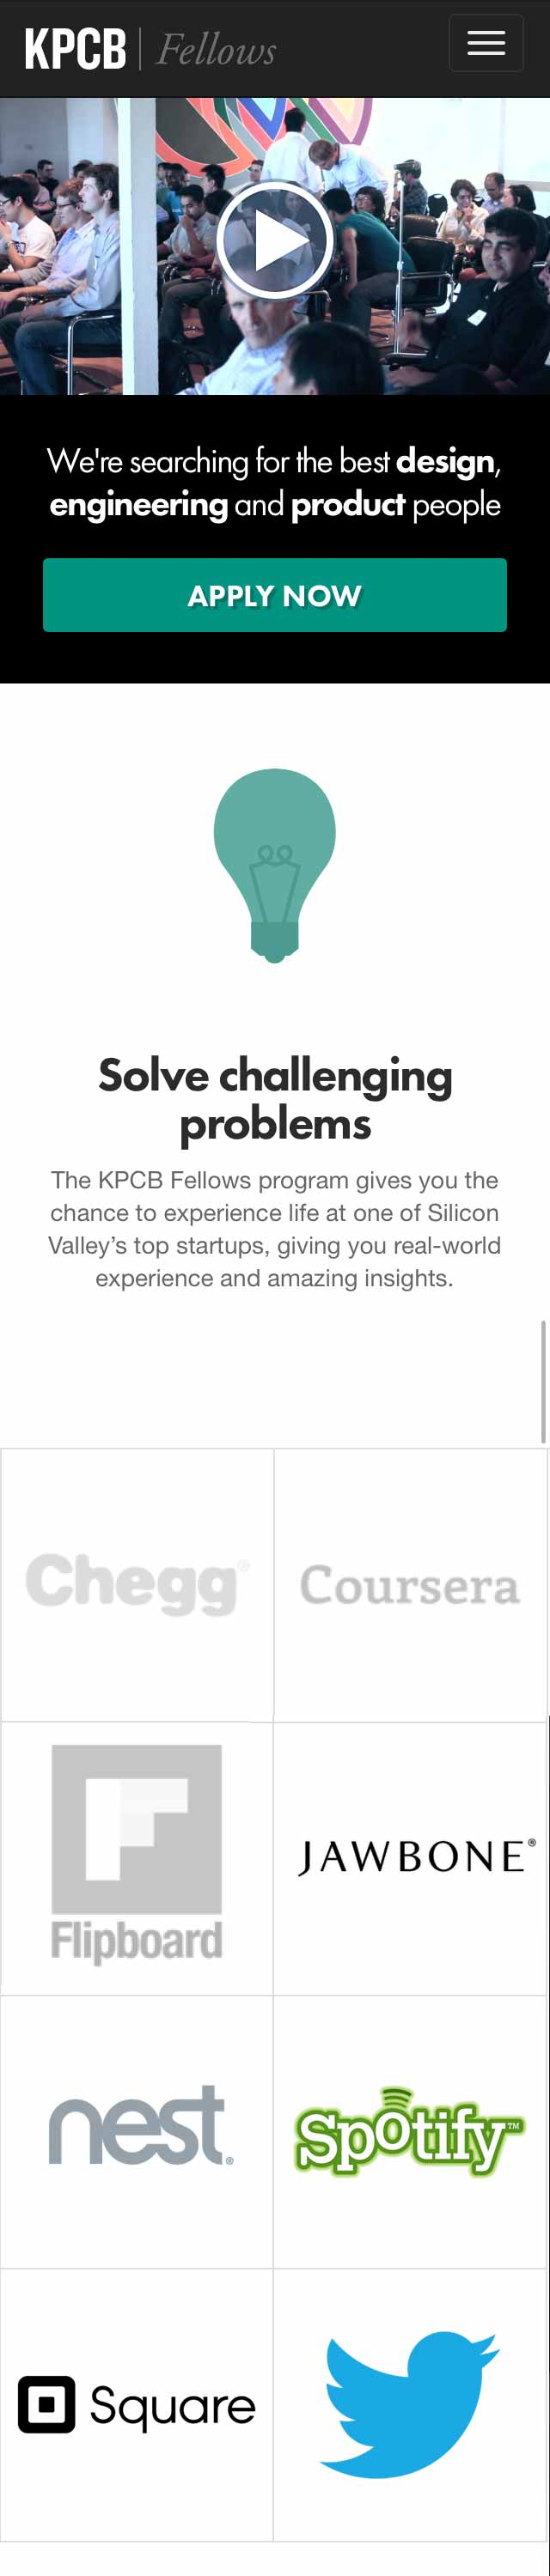 Handheld Screenshot for KPCB Fellows Website Project